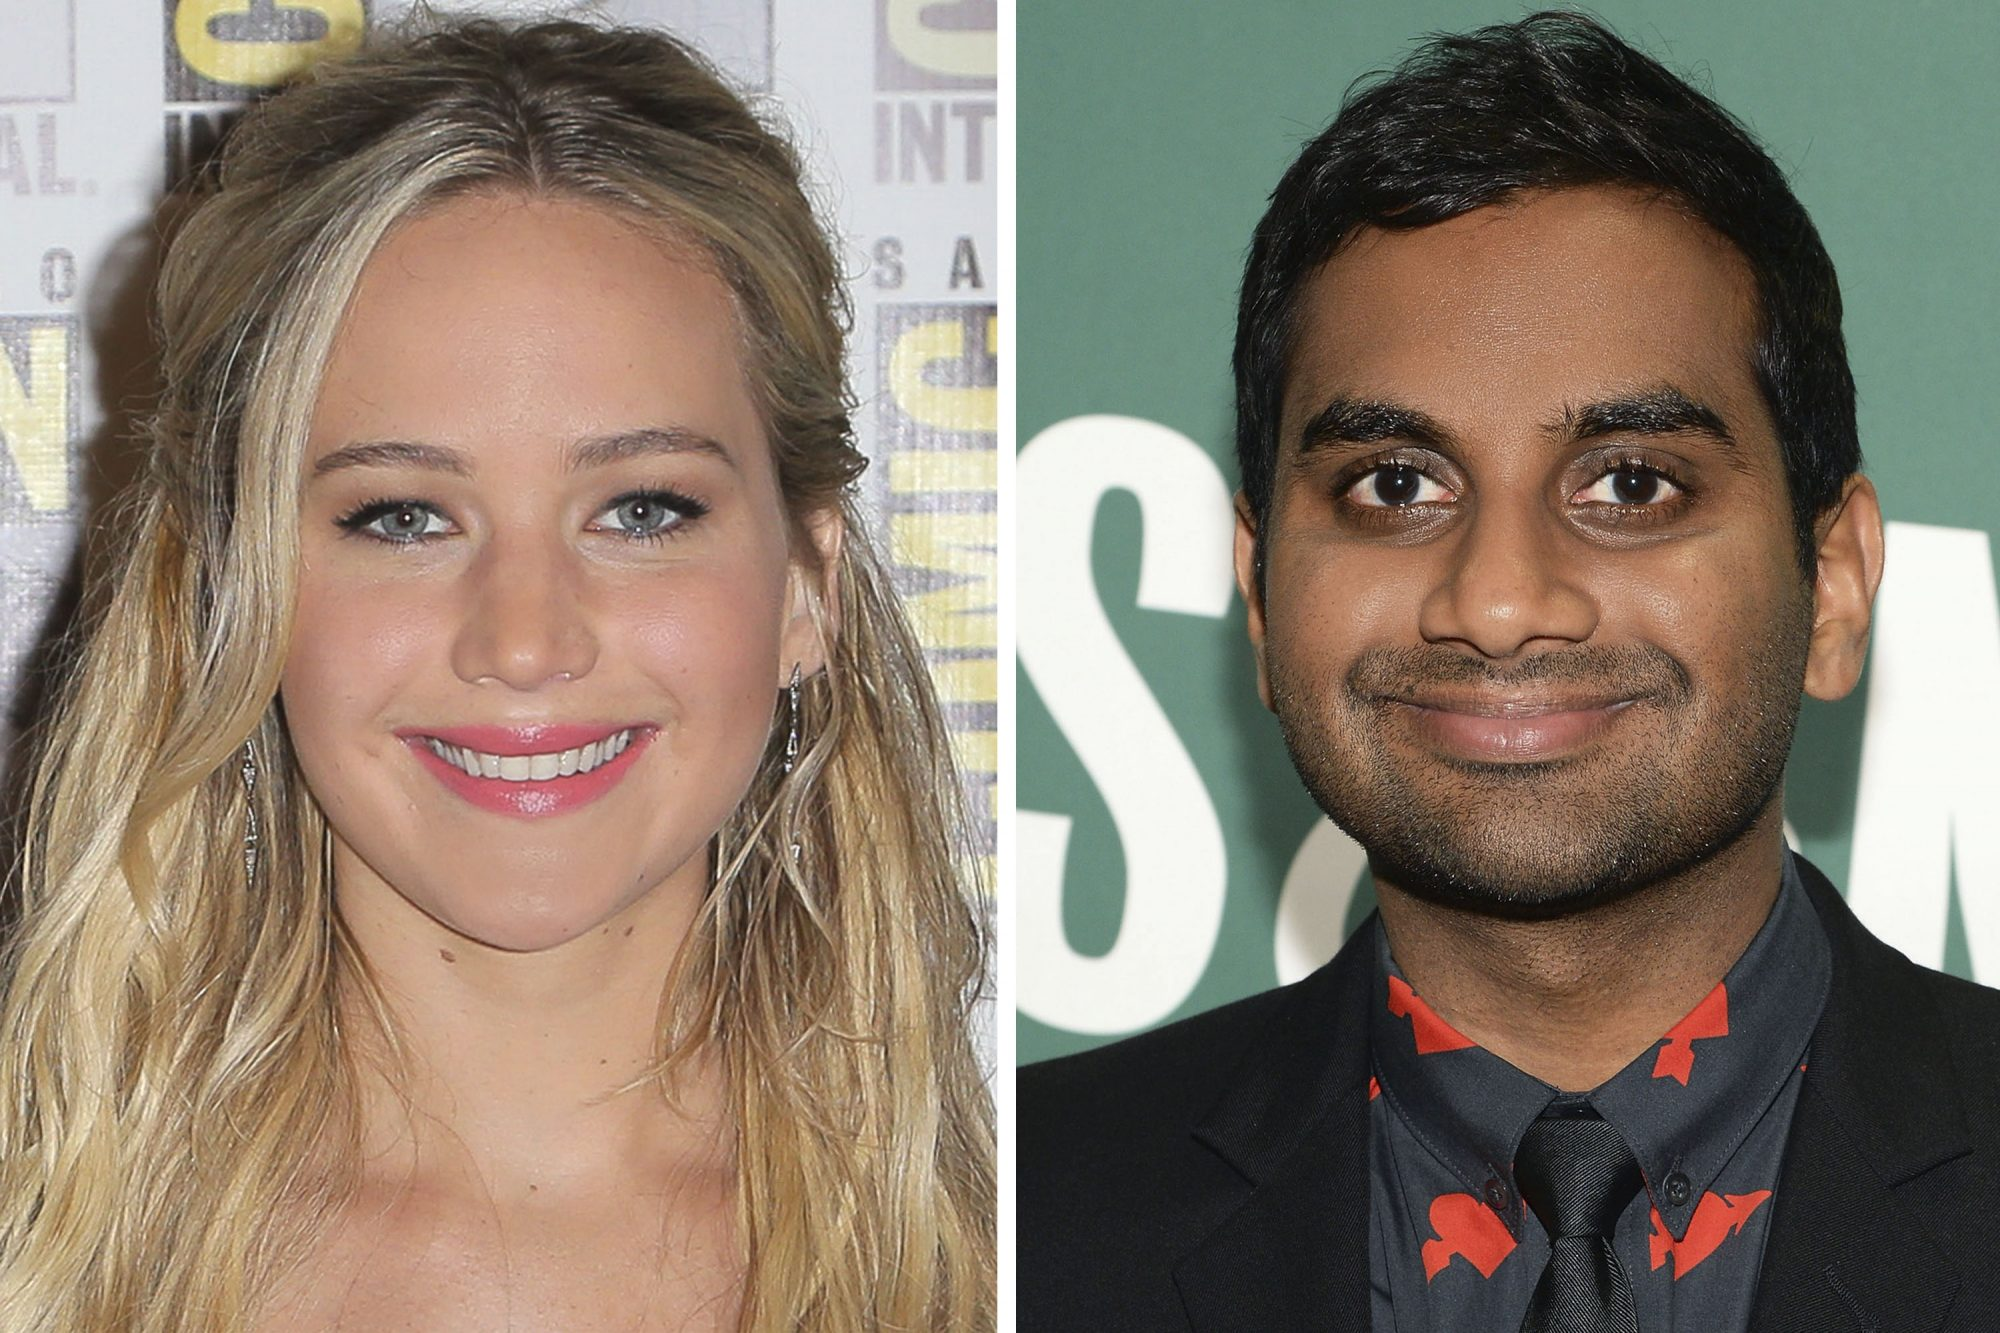 Jennifer Lawrence and Aziz Ansari